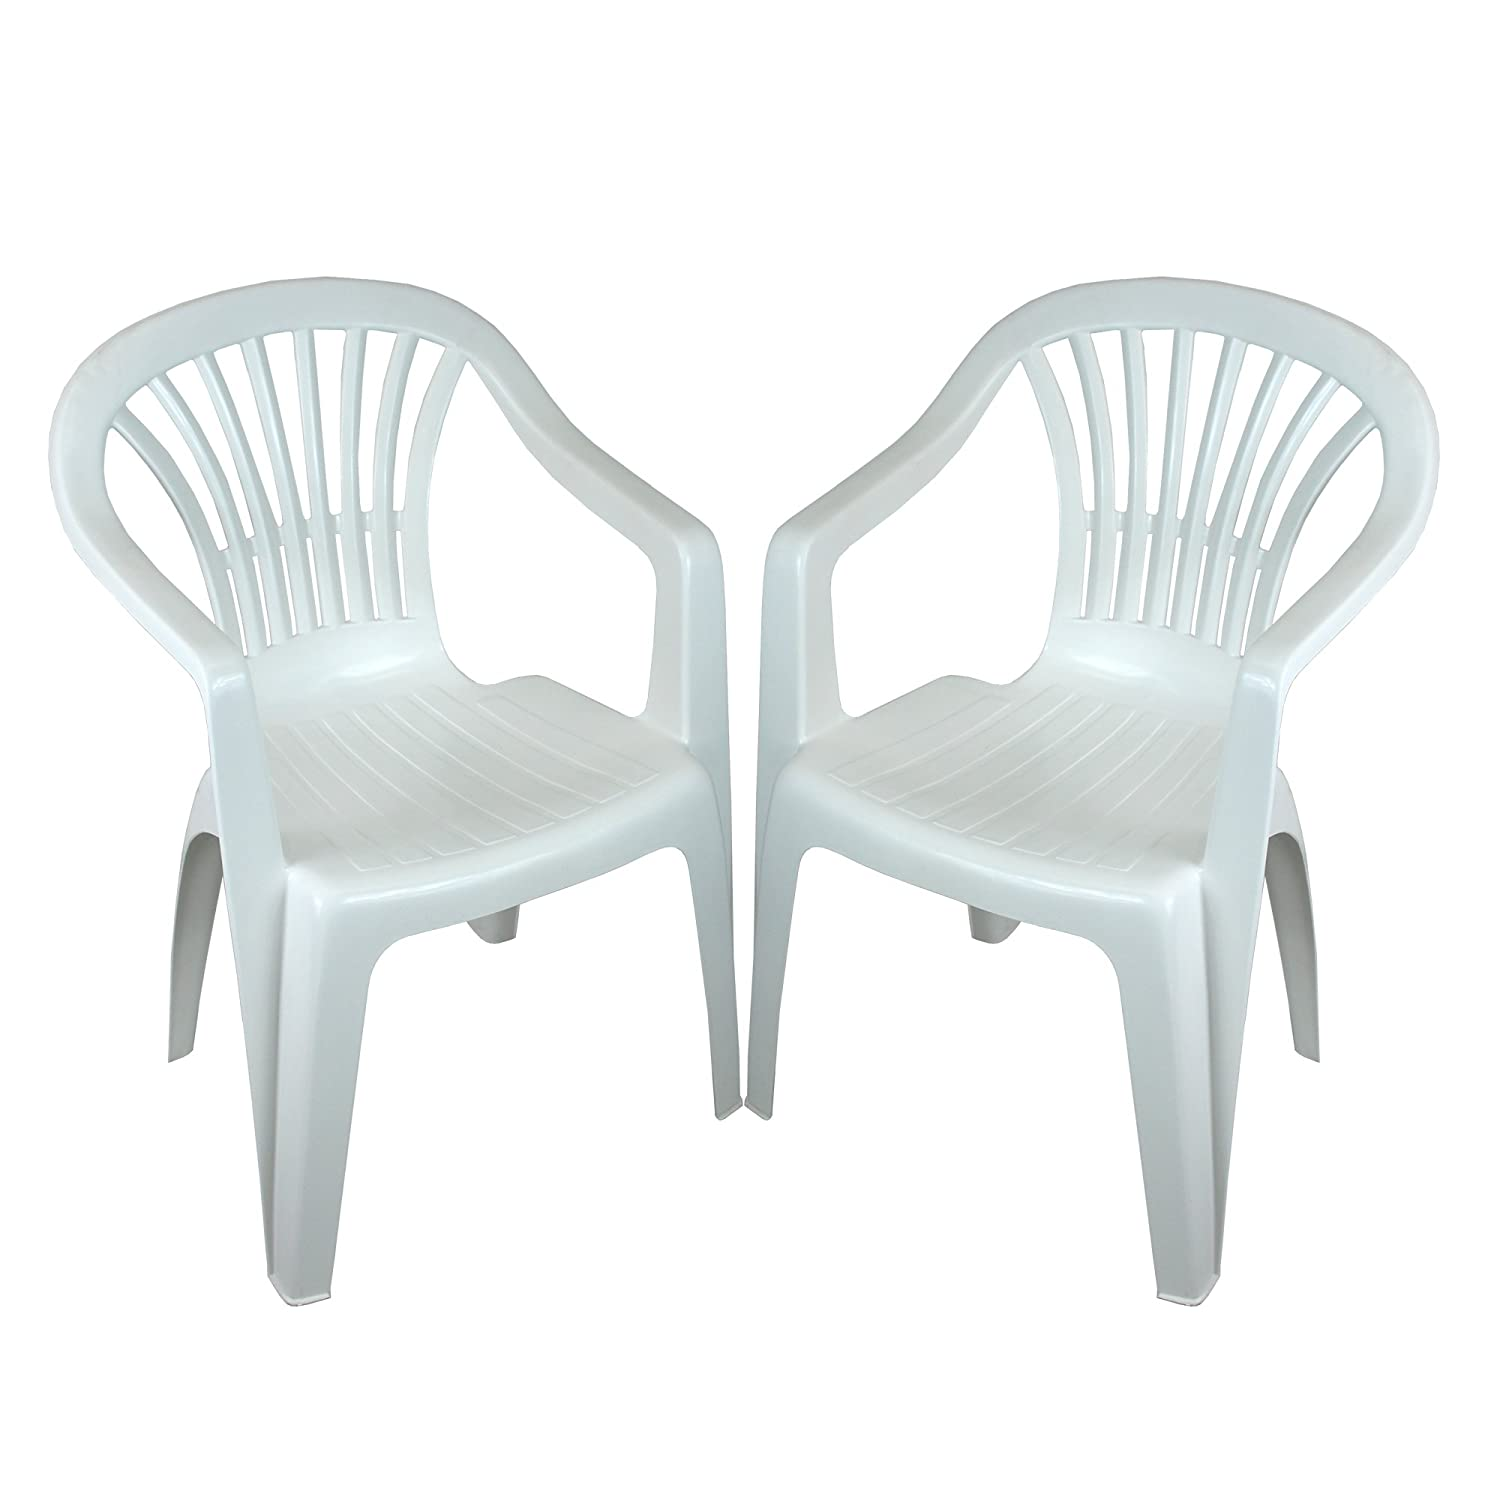 CrazyGadget Plastic Garden Low Back Chair Stackable Patio Outdoor Party Seat Chairs Picnic White Pack of 2 (X2) CrazyGadget®